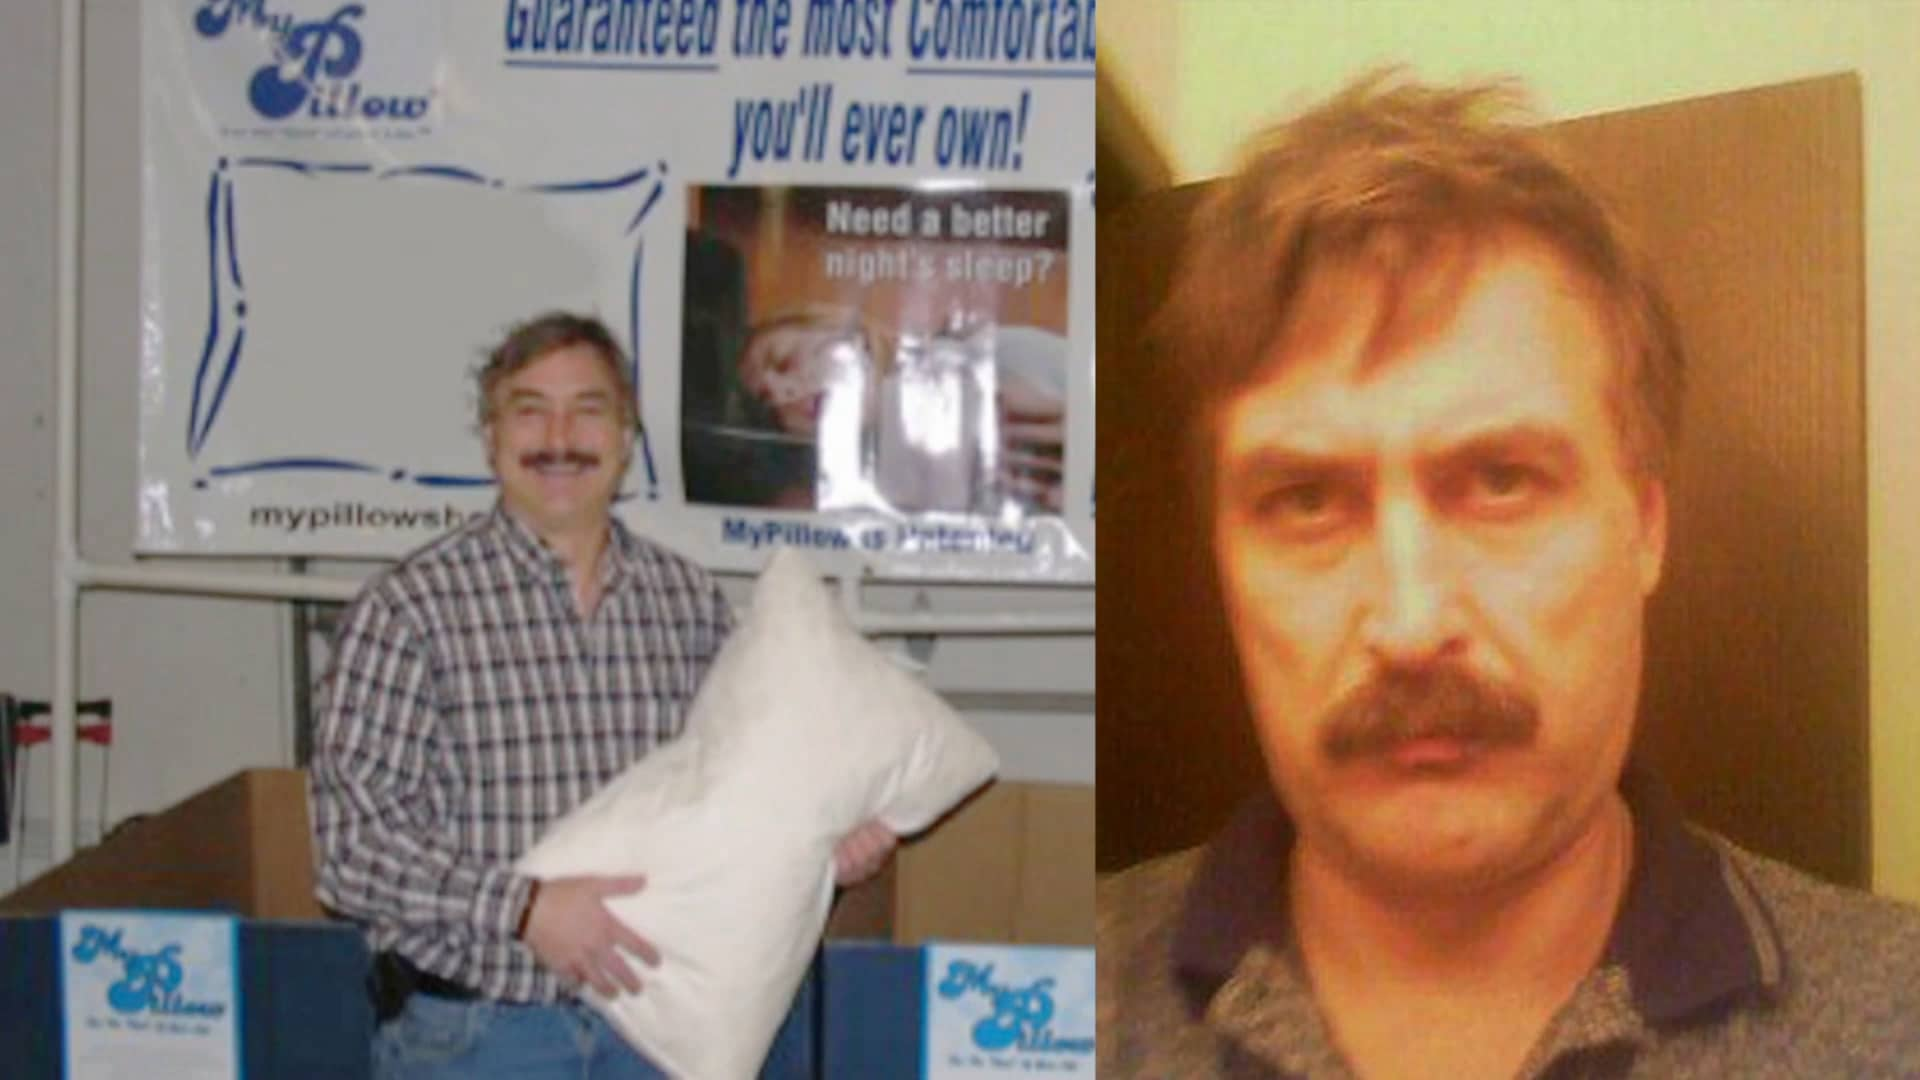 My Pillow Factory how mypillow founder went from addict to self made millionaire